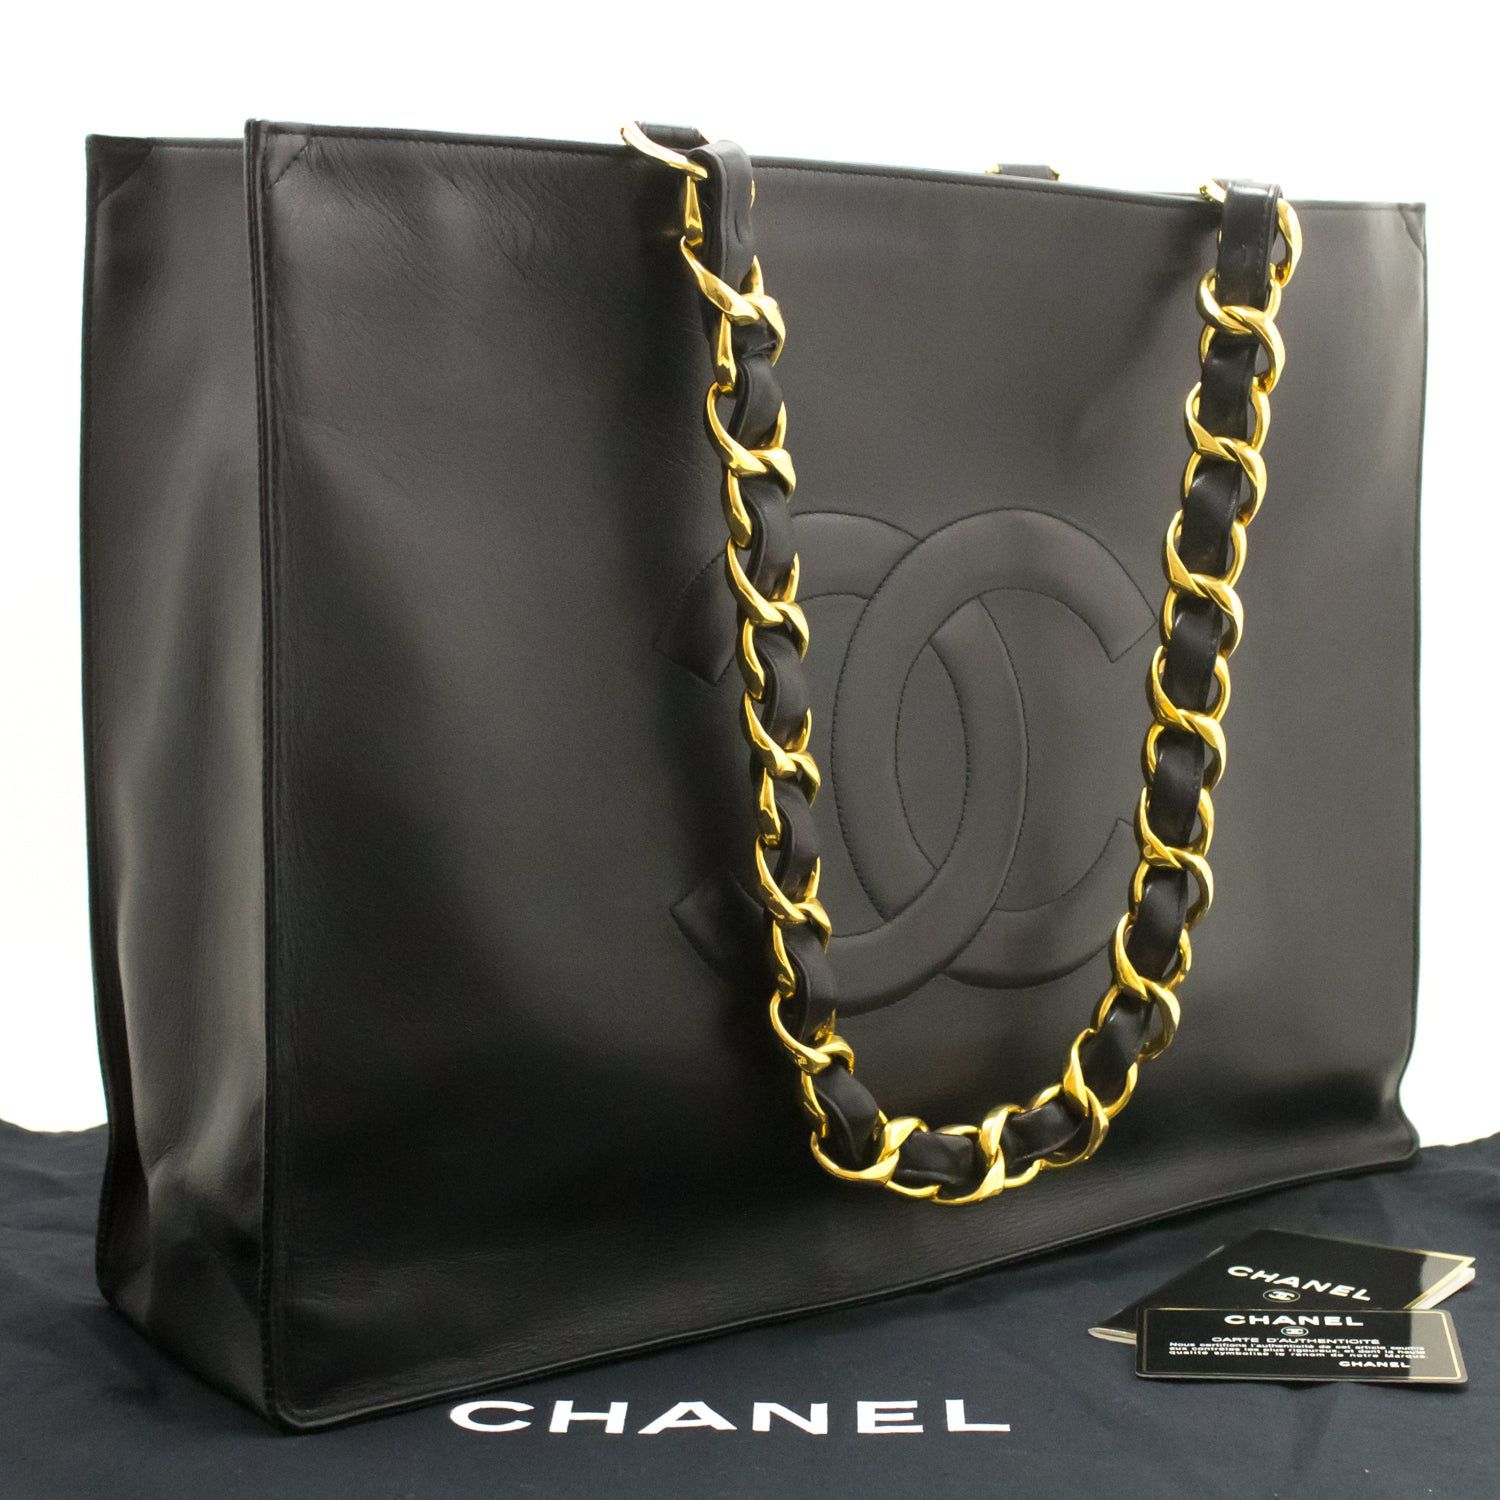 0ee1f94fc9eaf8 ... CHANEL Jumbo Large Big Chain Shoulder Bag Black Lambskin Leather L03- Chanel-hannari- ...